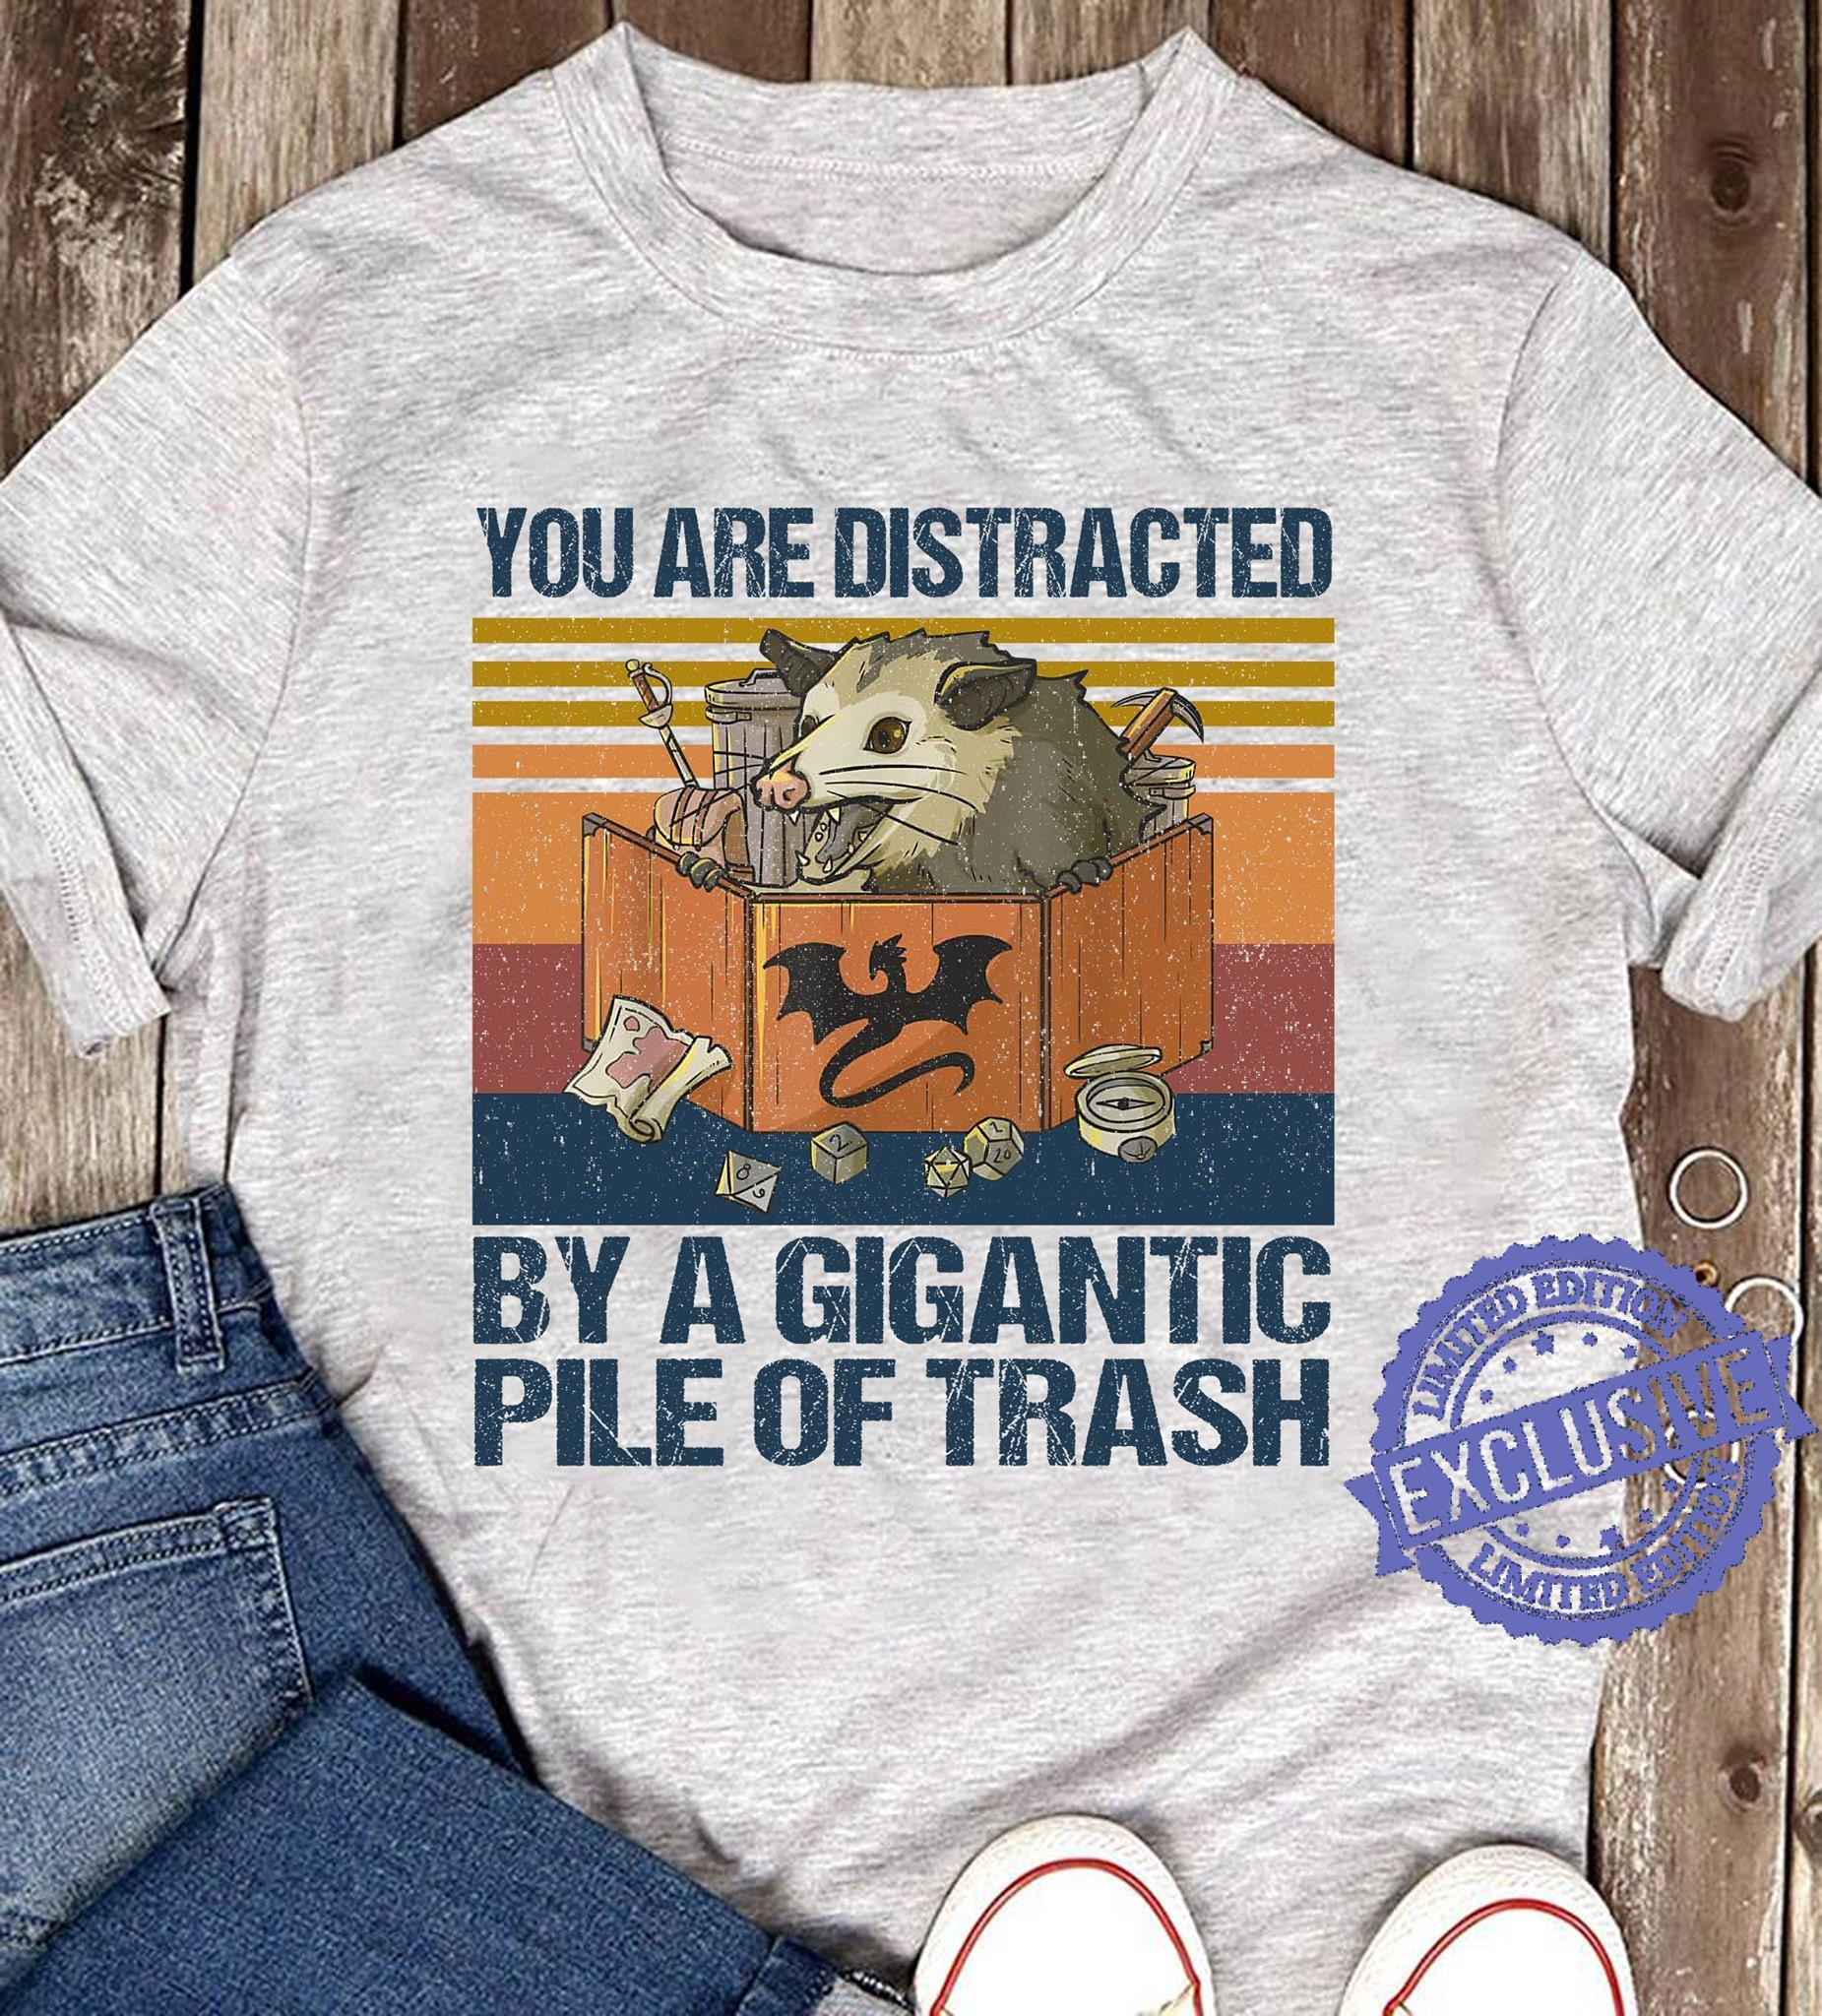 You are distracted by a gigantic pile of trash shirt